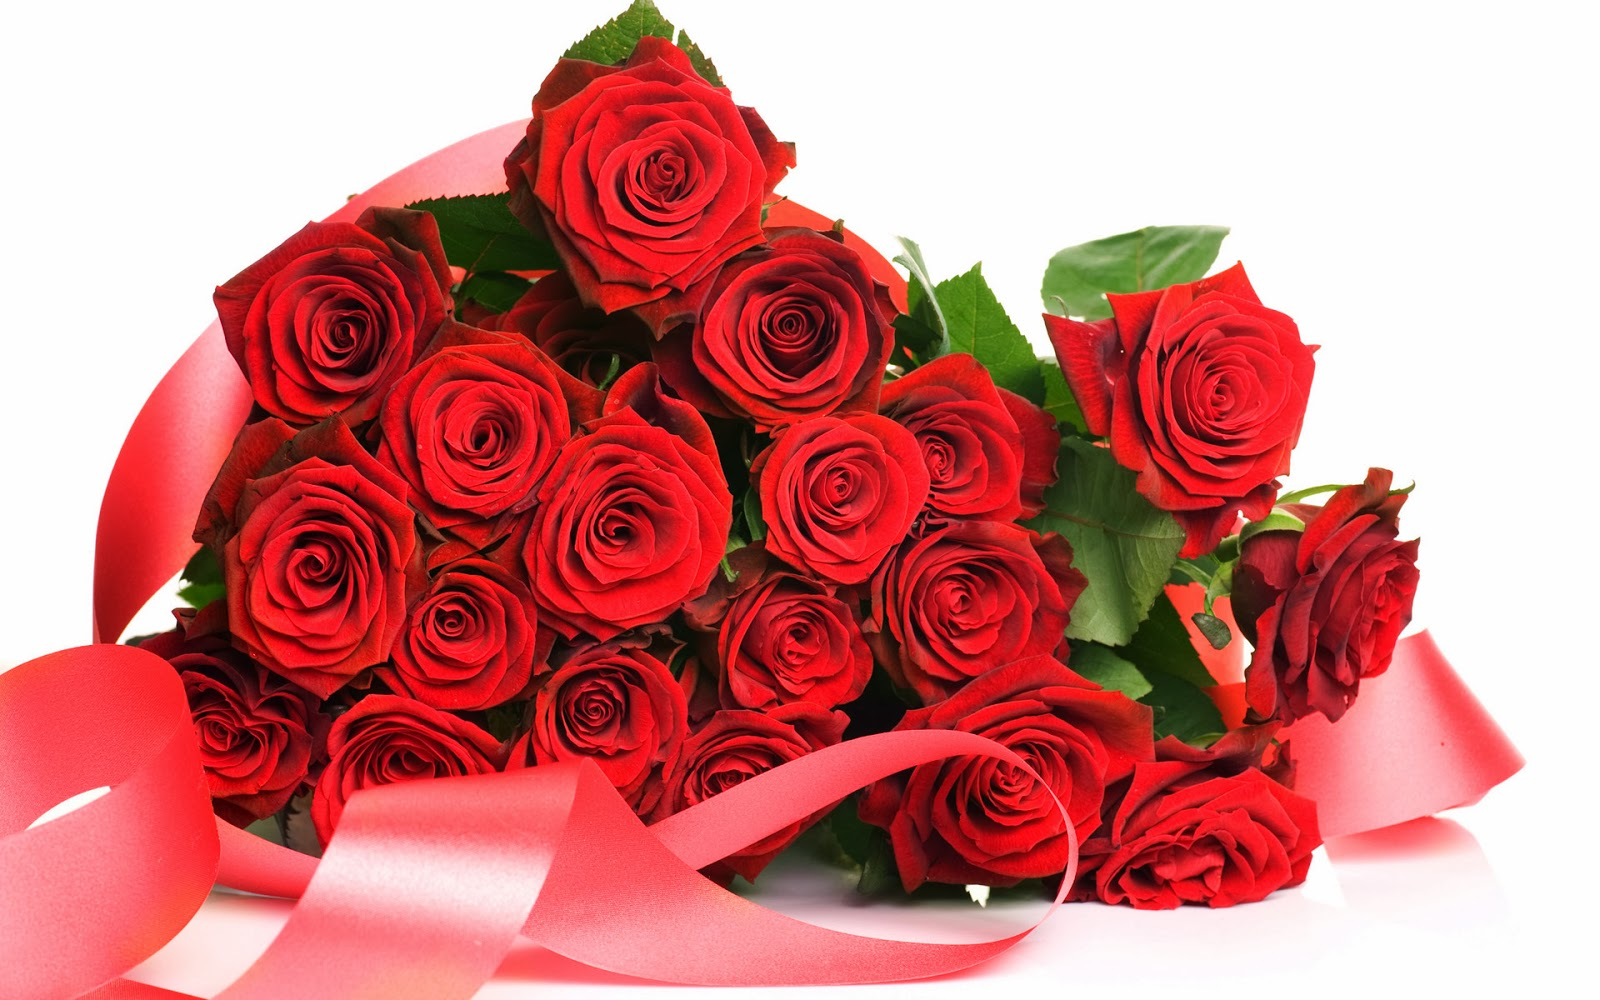 Red Rose HD Flowers Wallpapers - Flowers